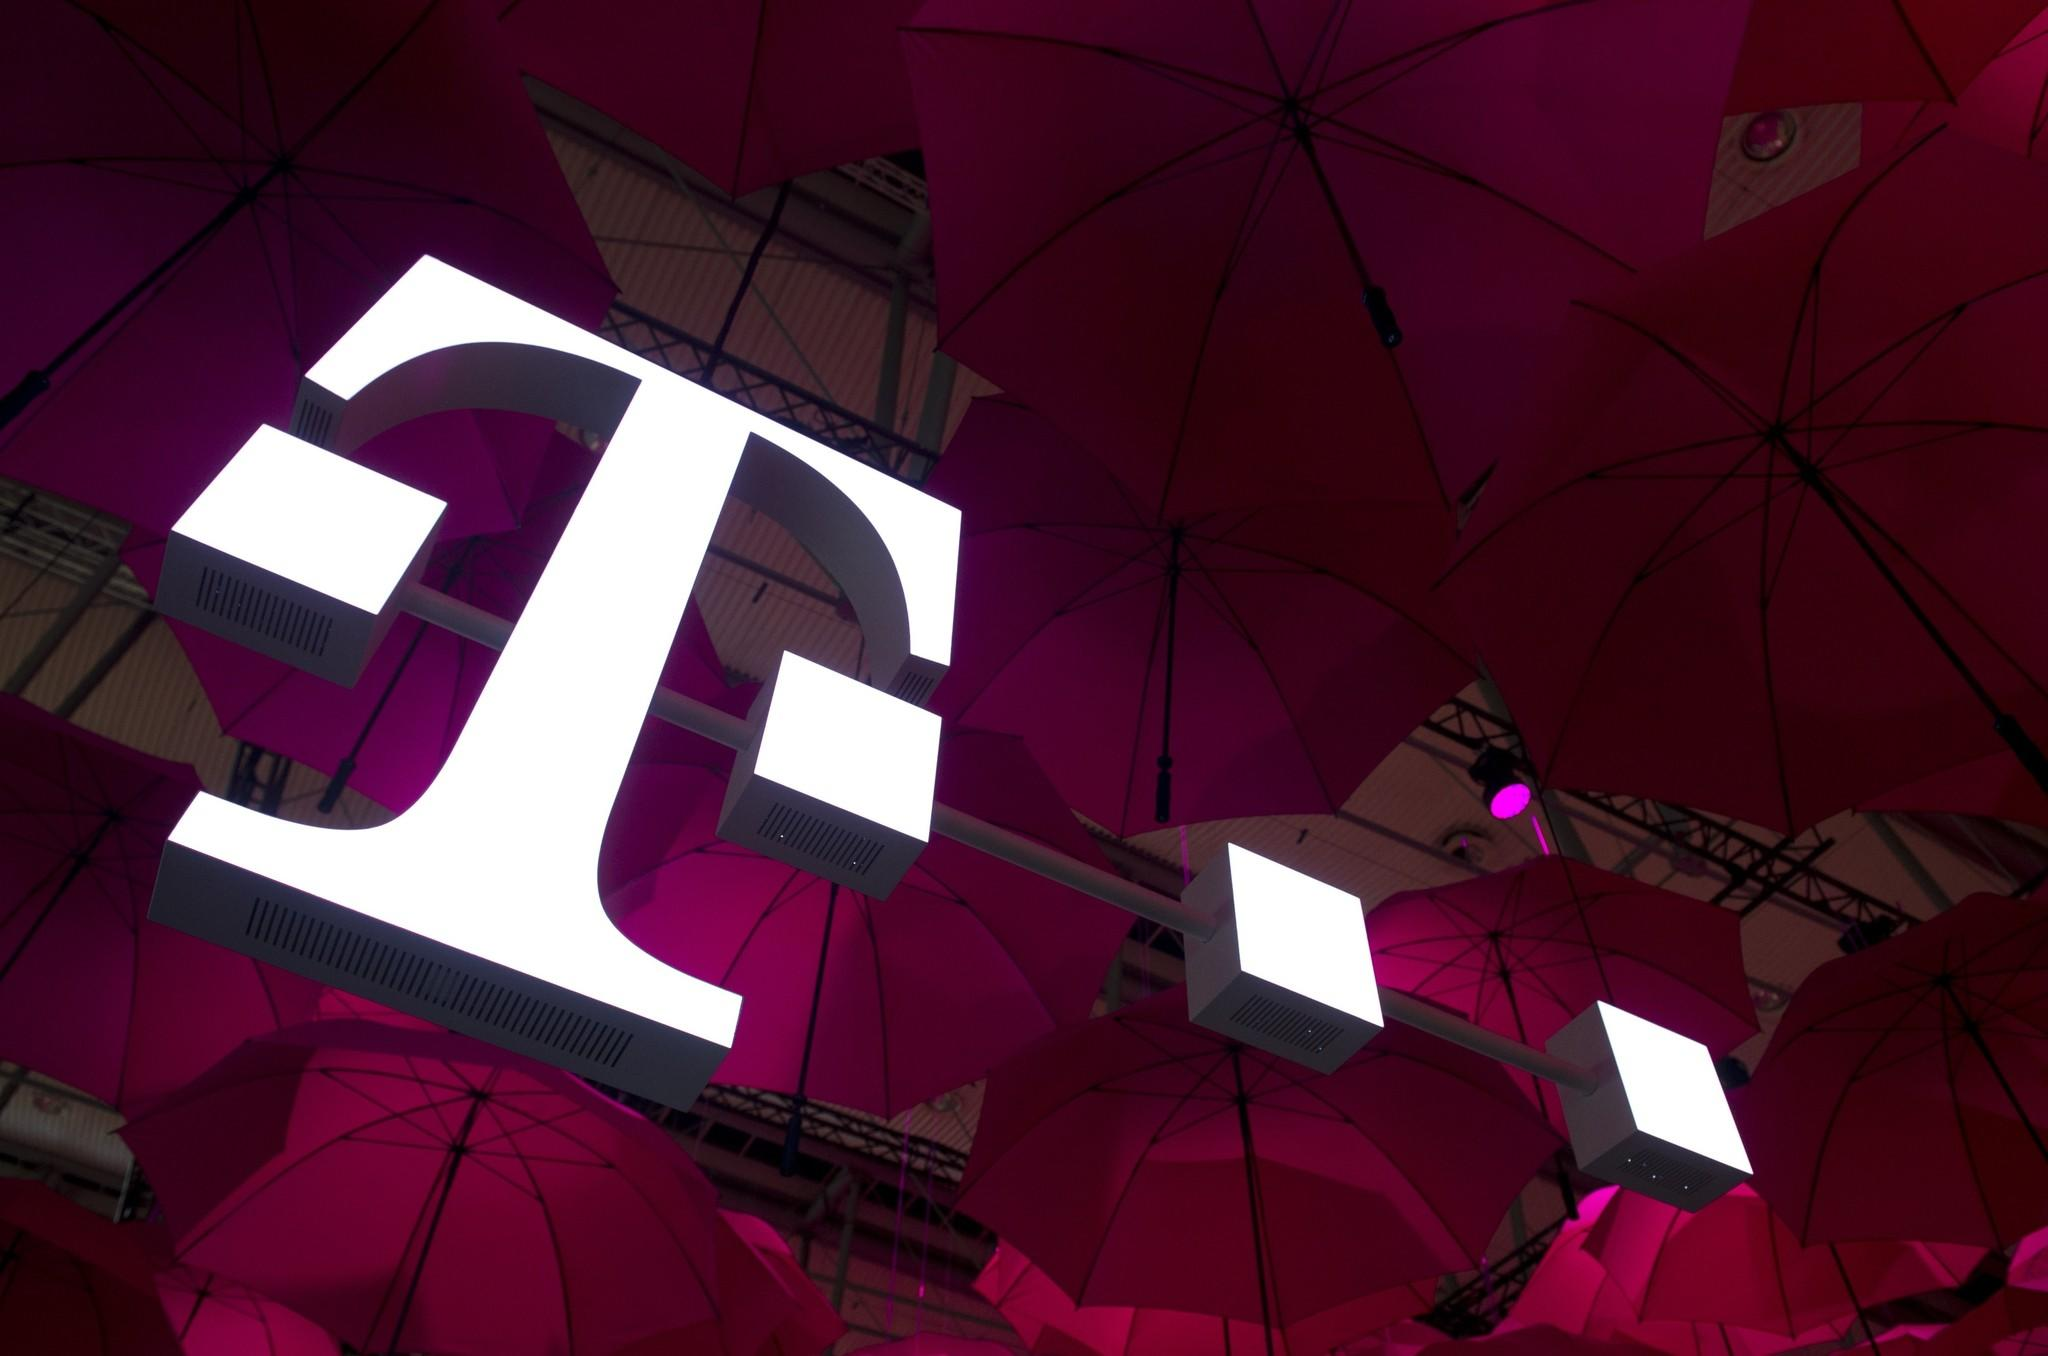 T-Mobile is offering customers iPads capable of connecting to LTE networks for the same price as Wi-Fi-only iPads -- essentially a $130 discount.